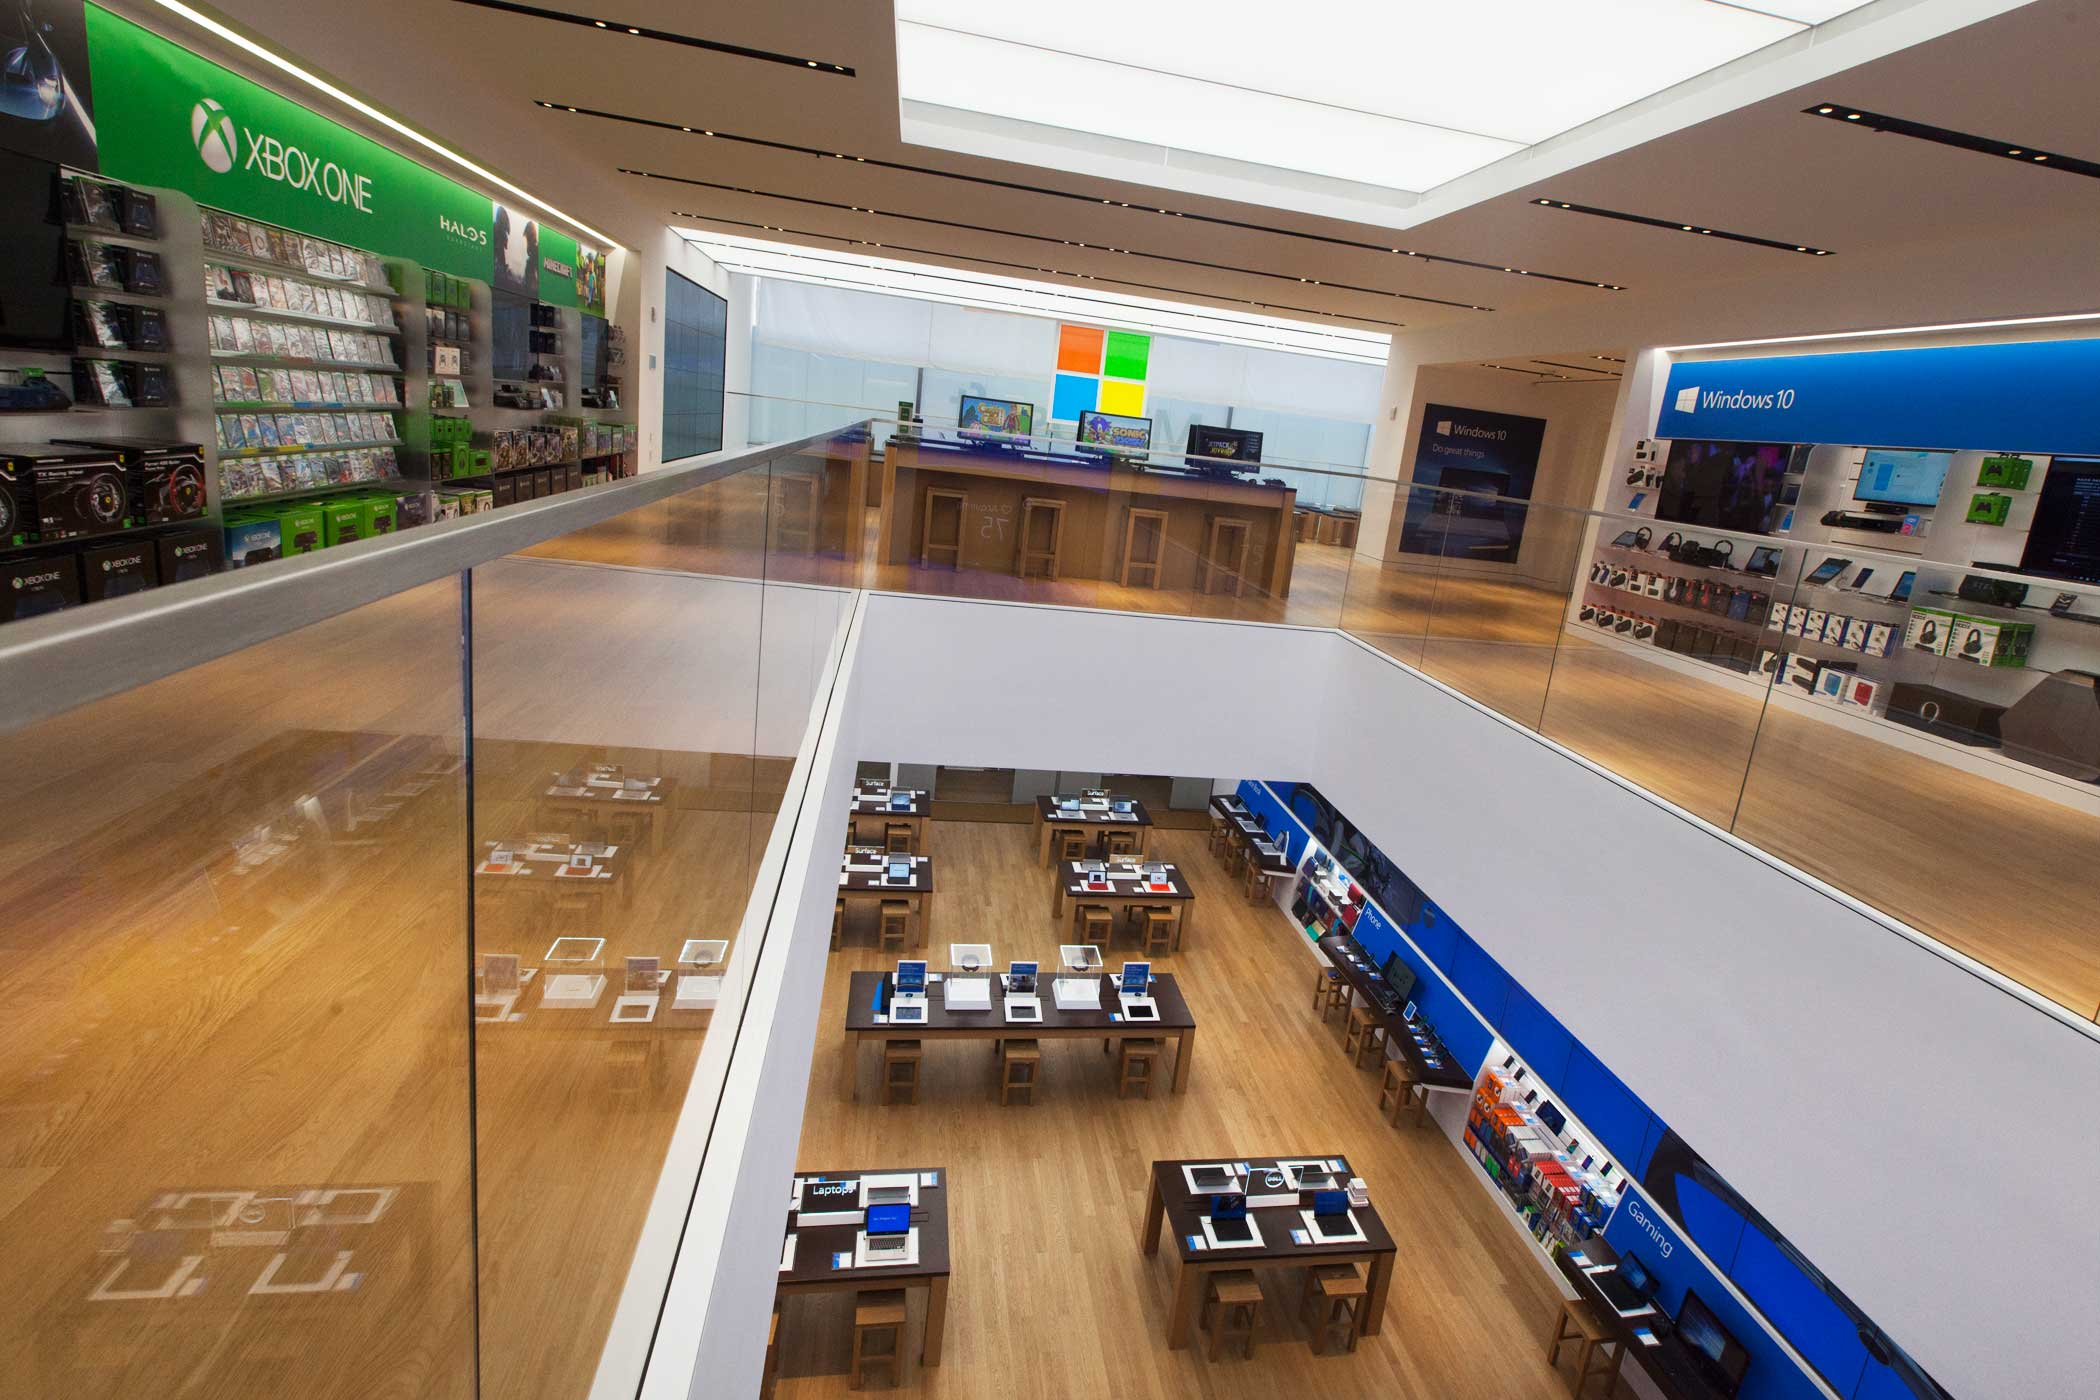 <b>Microsoft Store</b> Displays line the walls of the first and second floors.